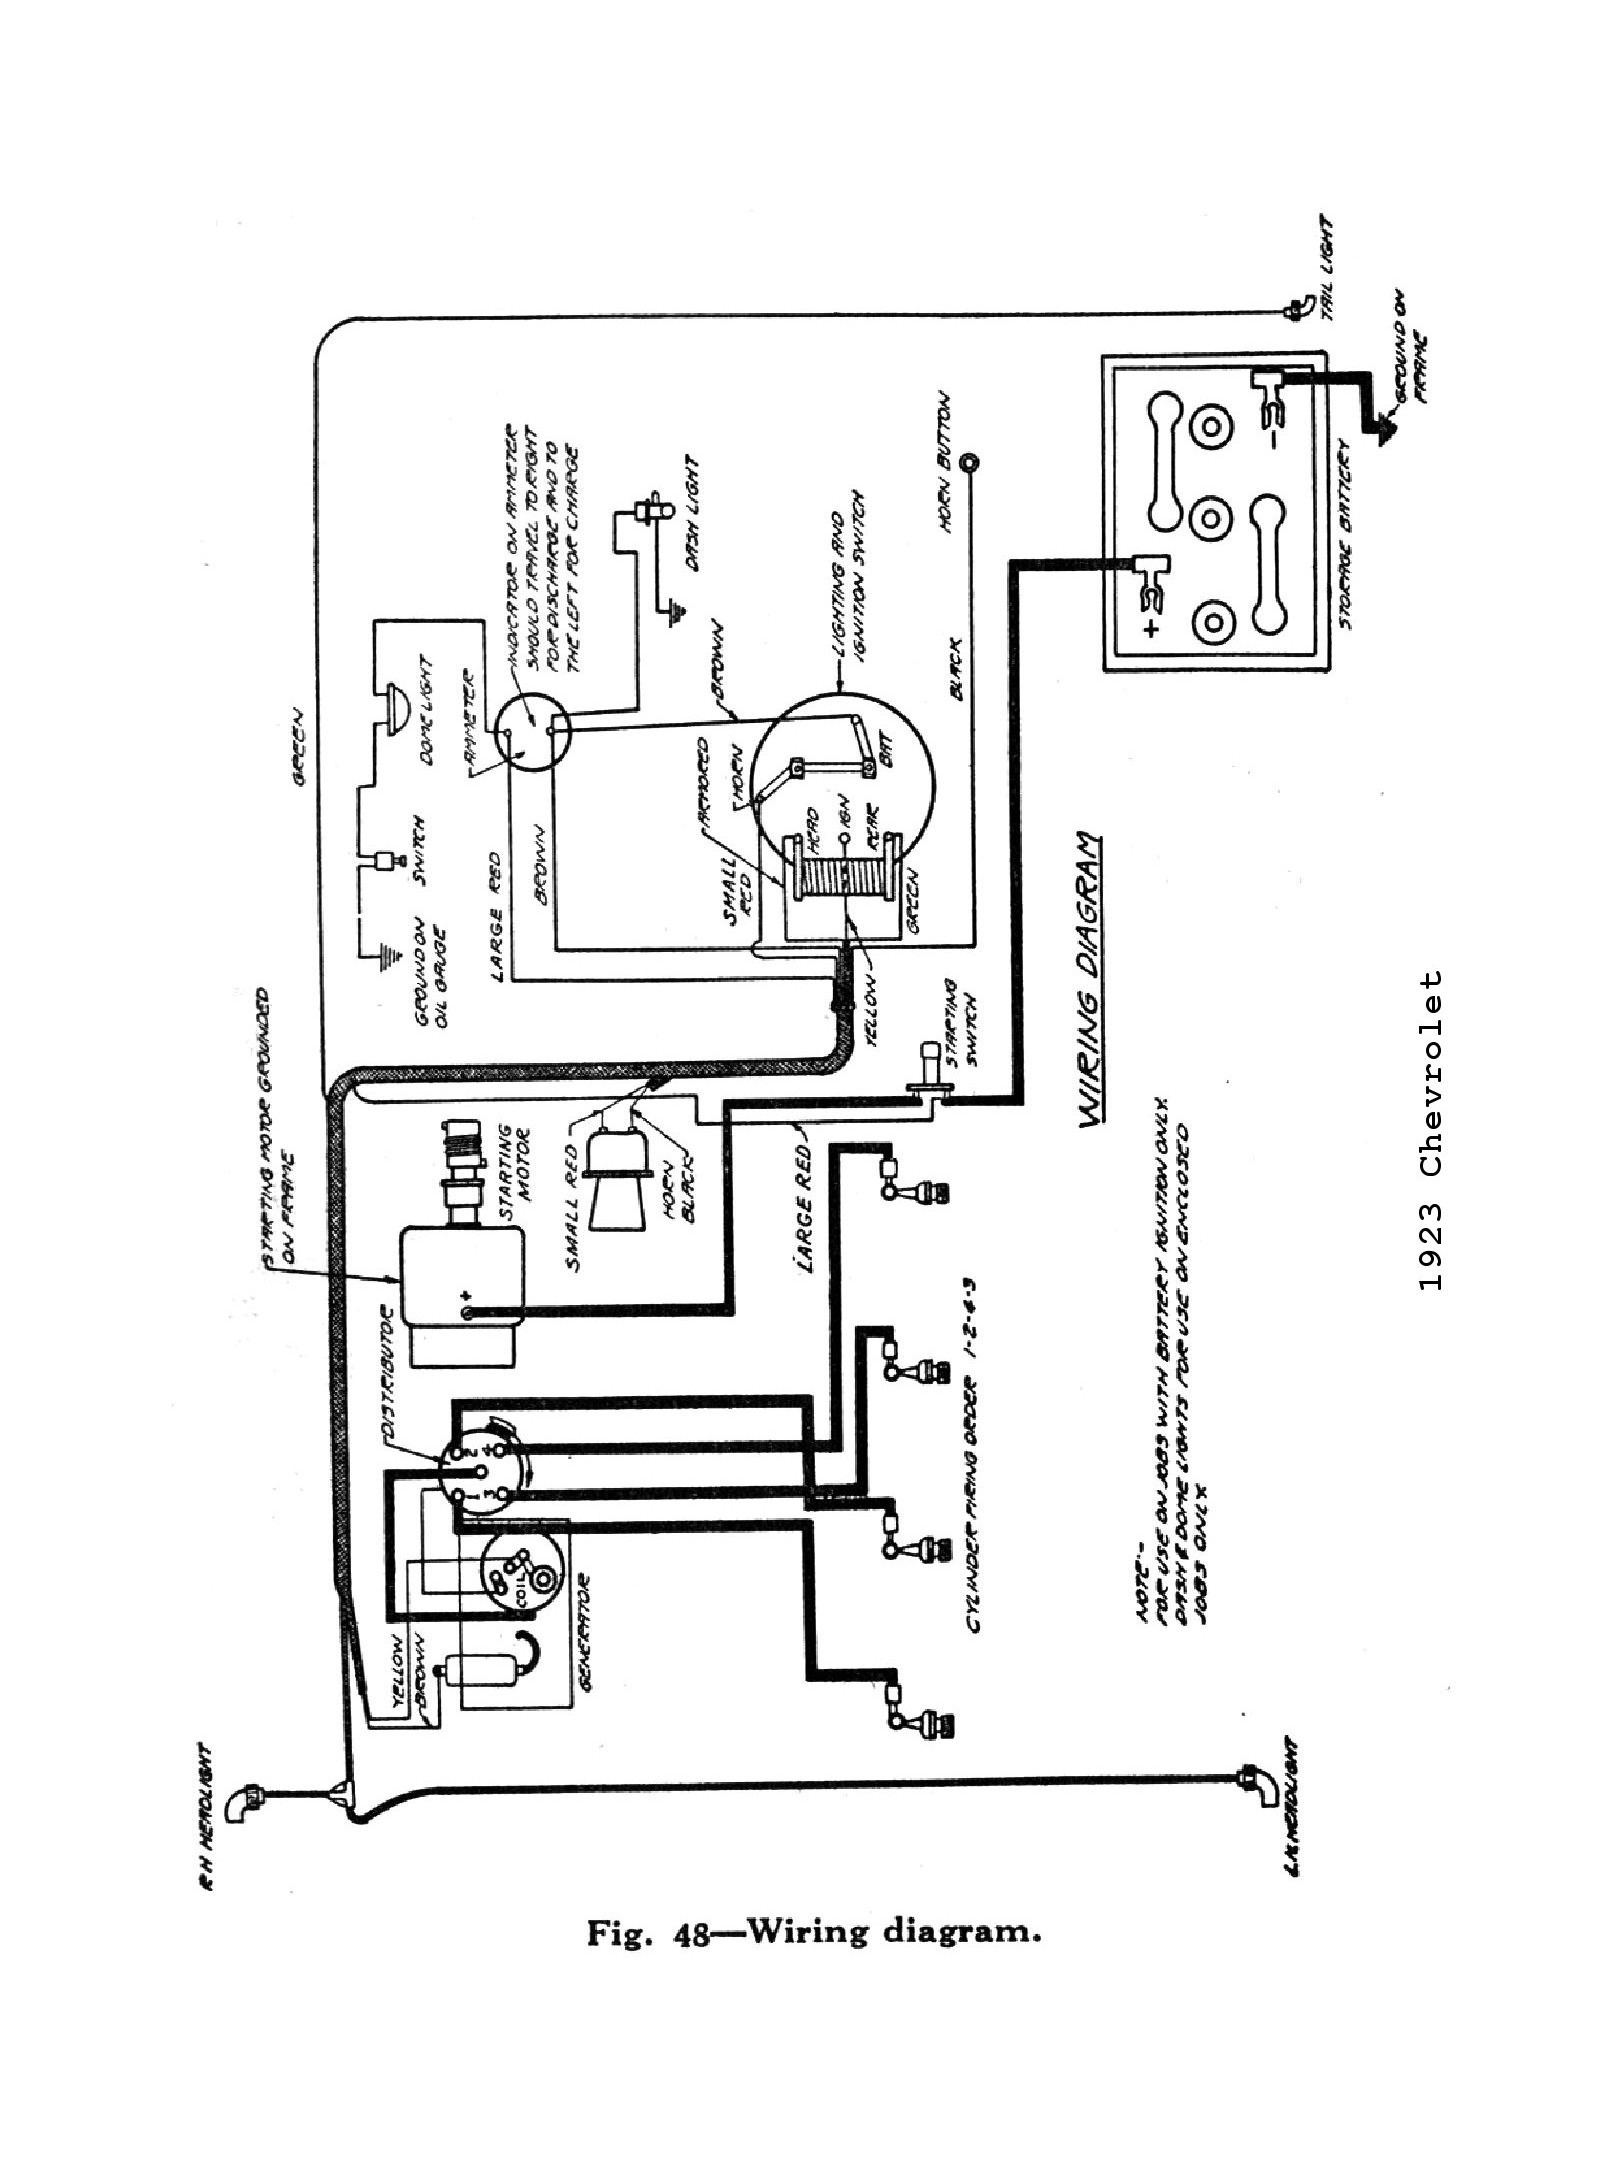 hight resolution of 67 72 chevy truck wiring diagram 1977 chevy truck alternator wiring 72 chevy wiring diagram 1977